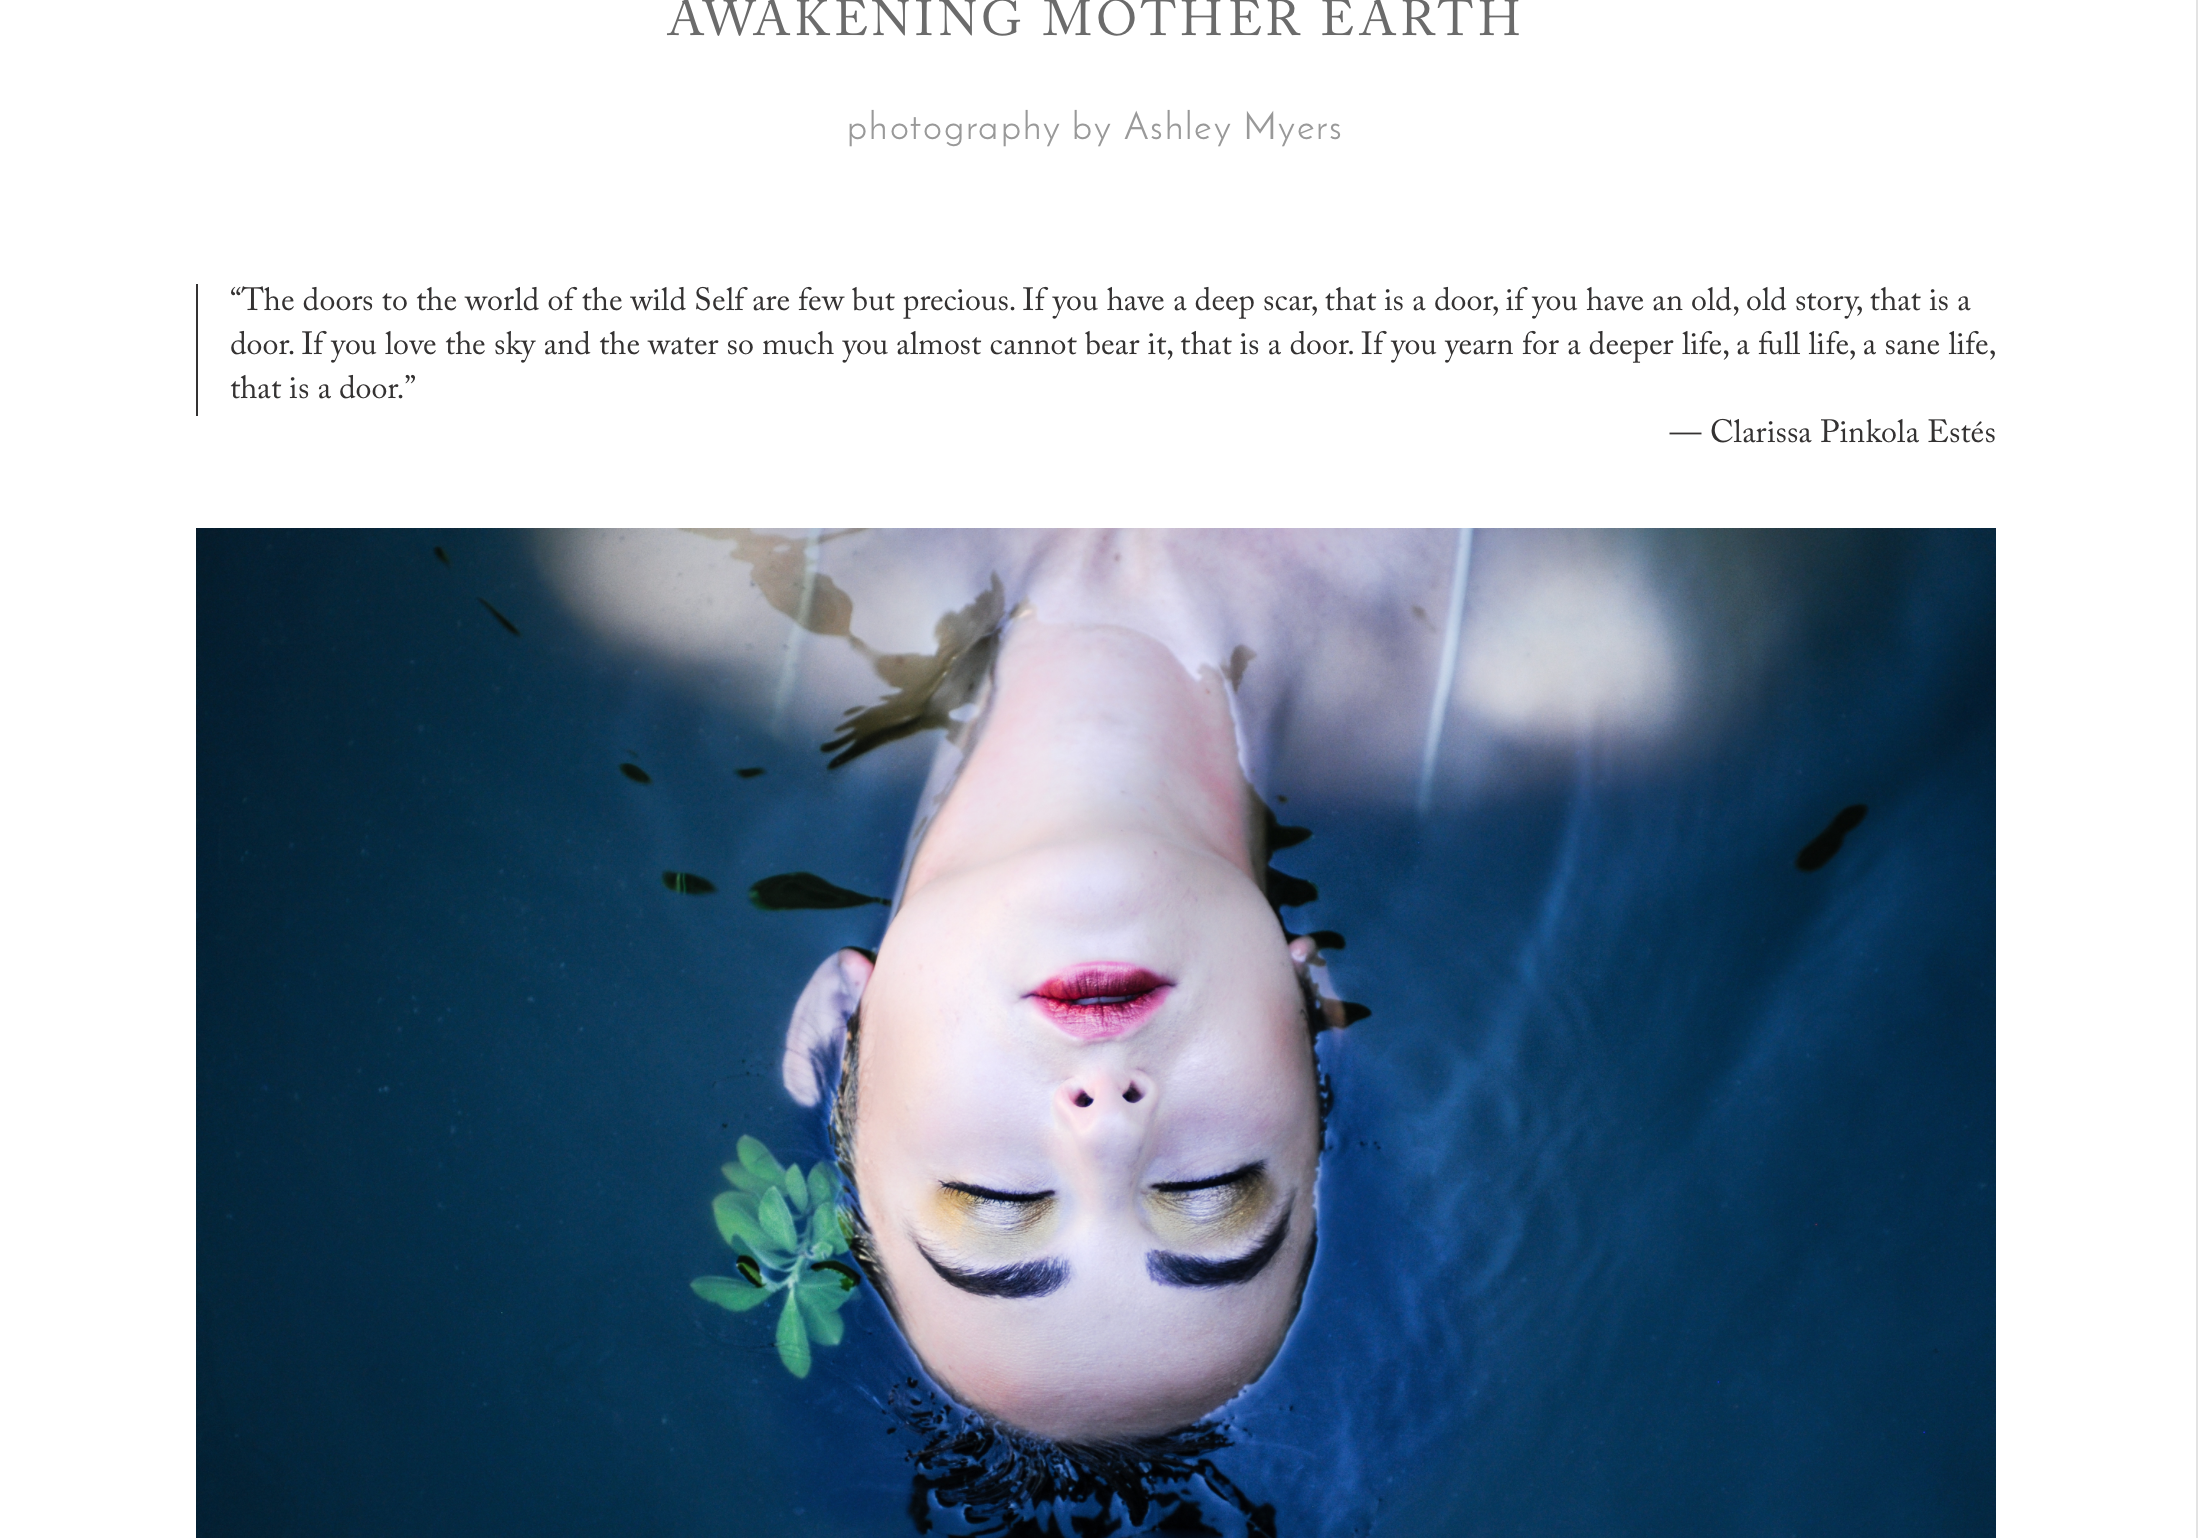 Cordella Magazine showcasing Awakening Mother Earth